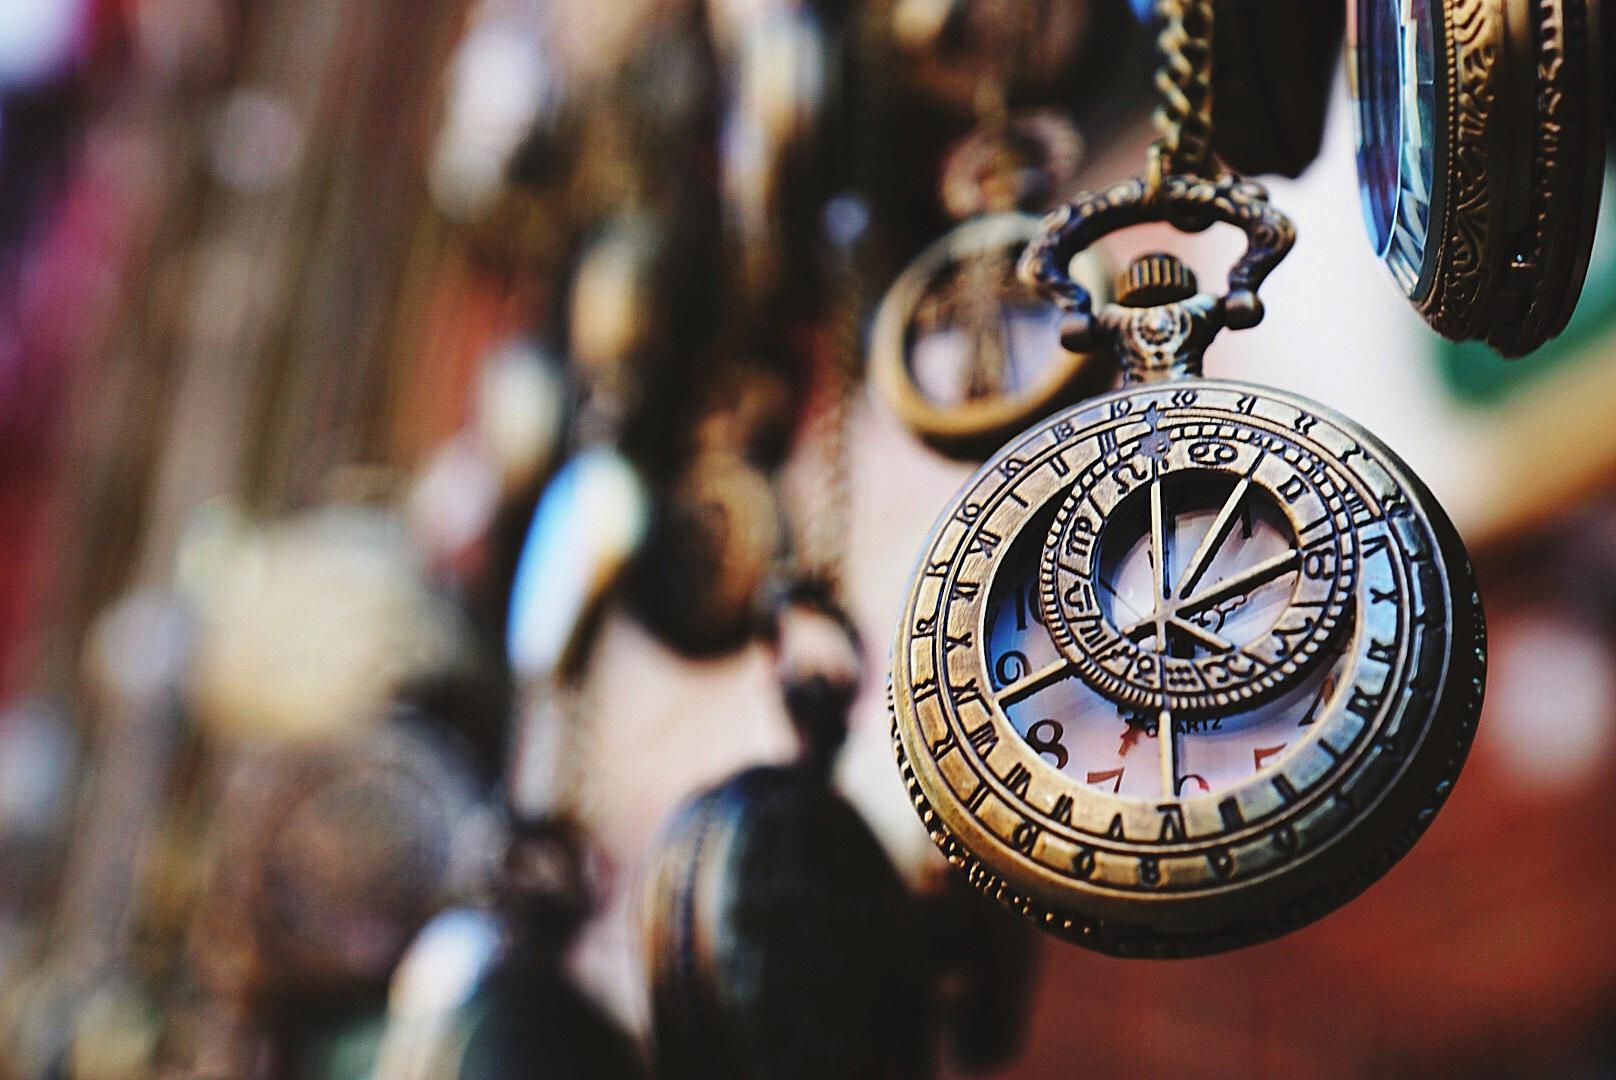 How to Get Your Antiques and Collectibles Appraised?